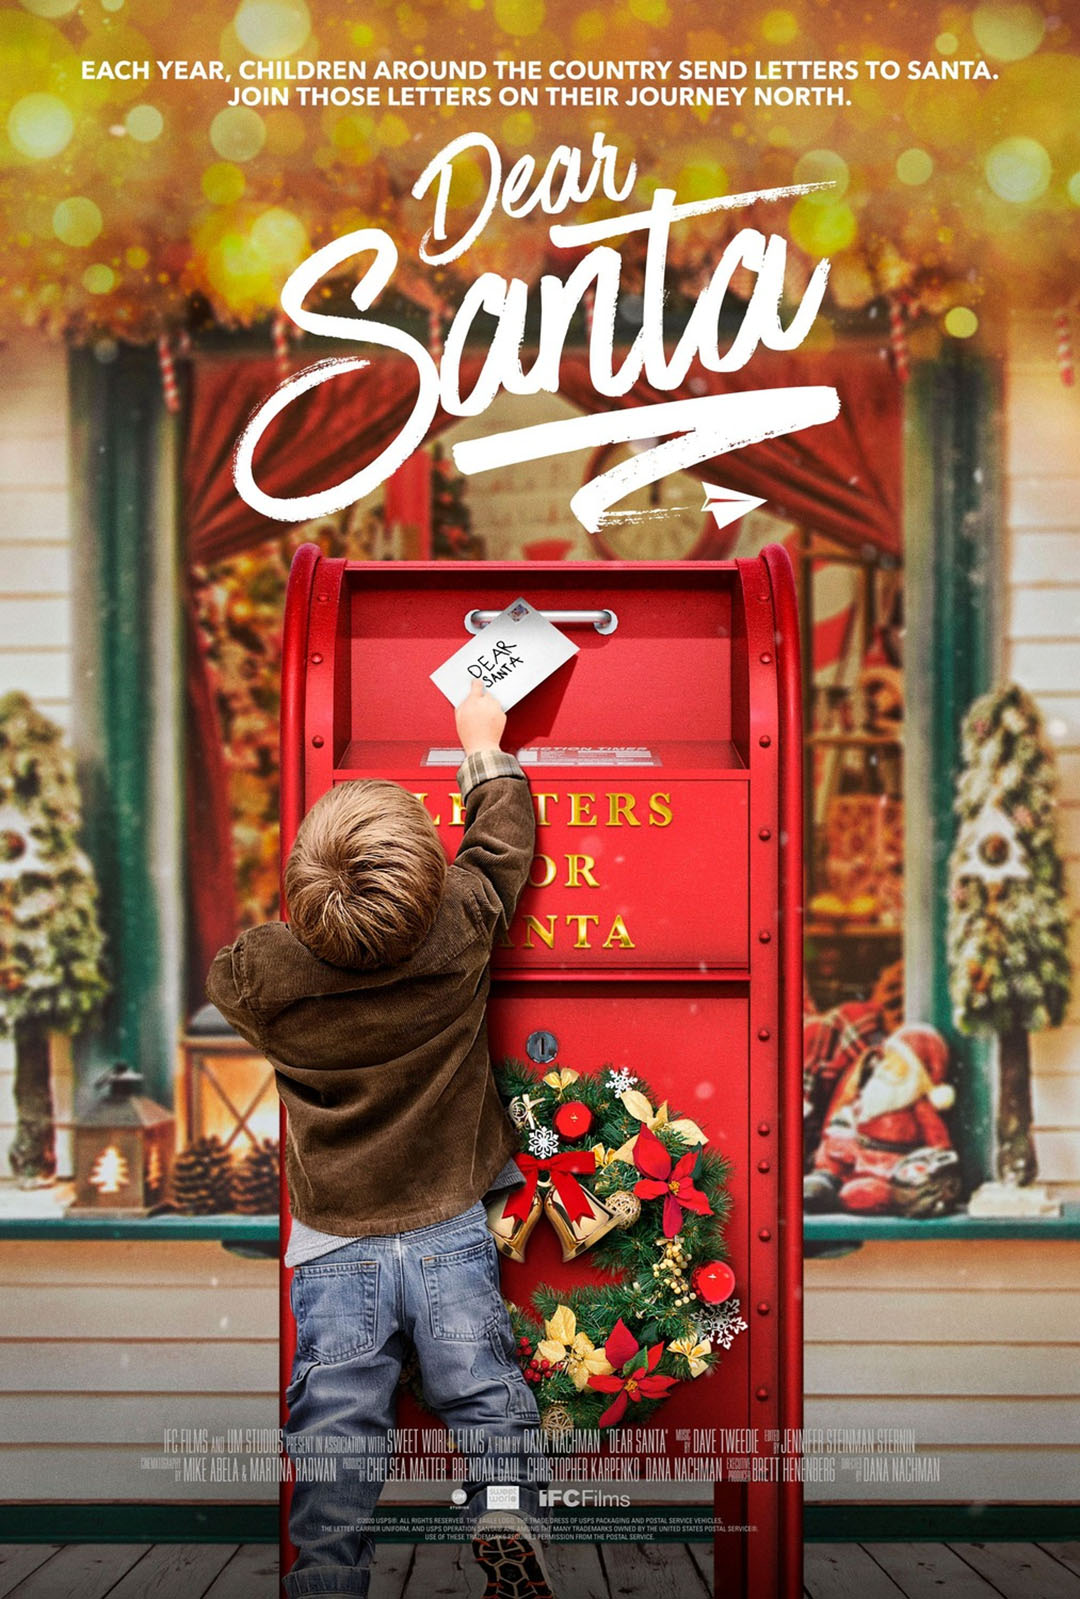 In this film poster for DEAR SANTA documentary, a young child reaches up to mail a letter to Santa.